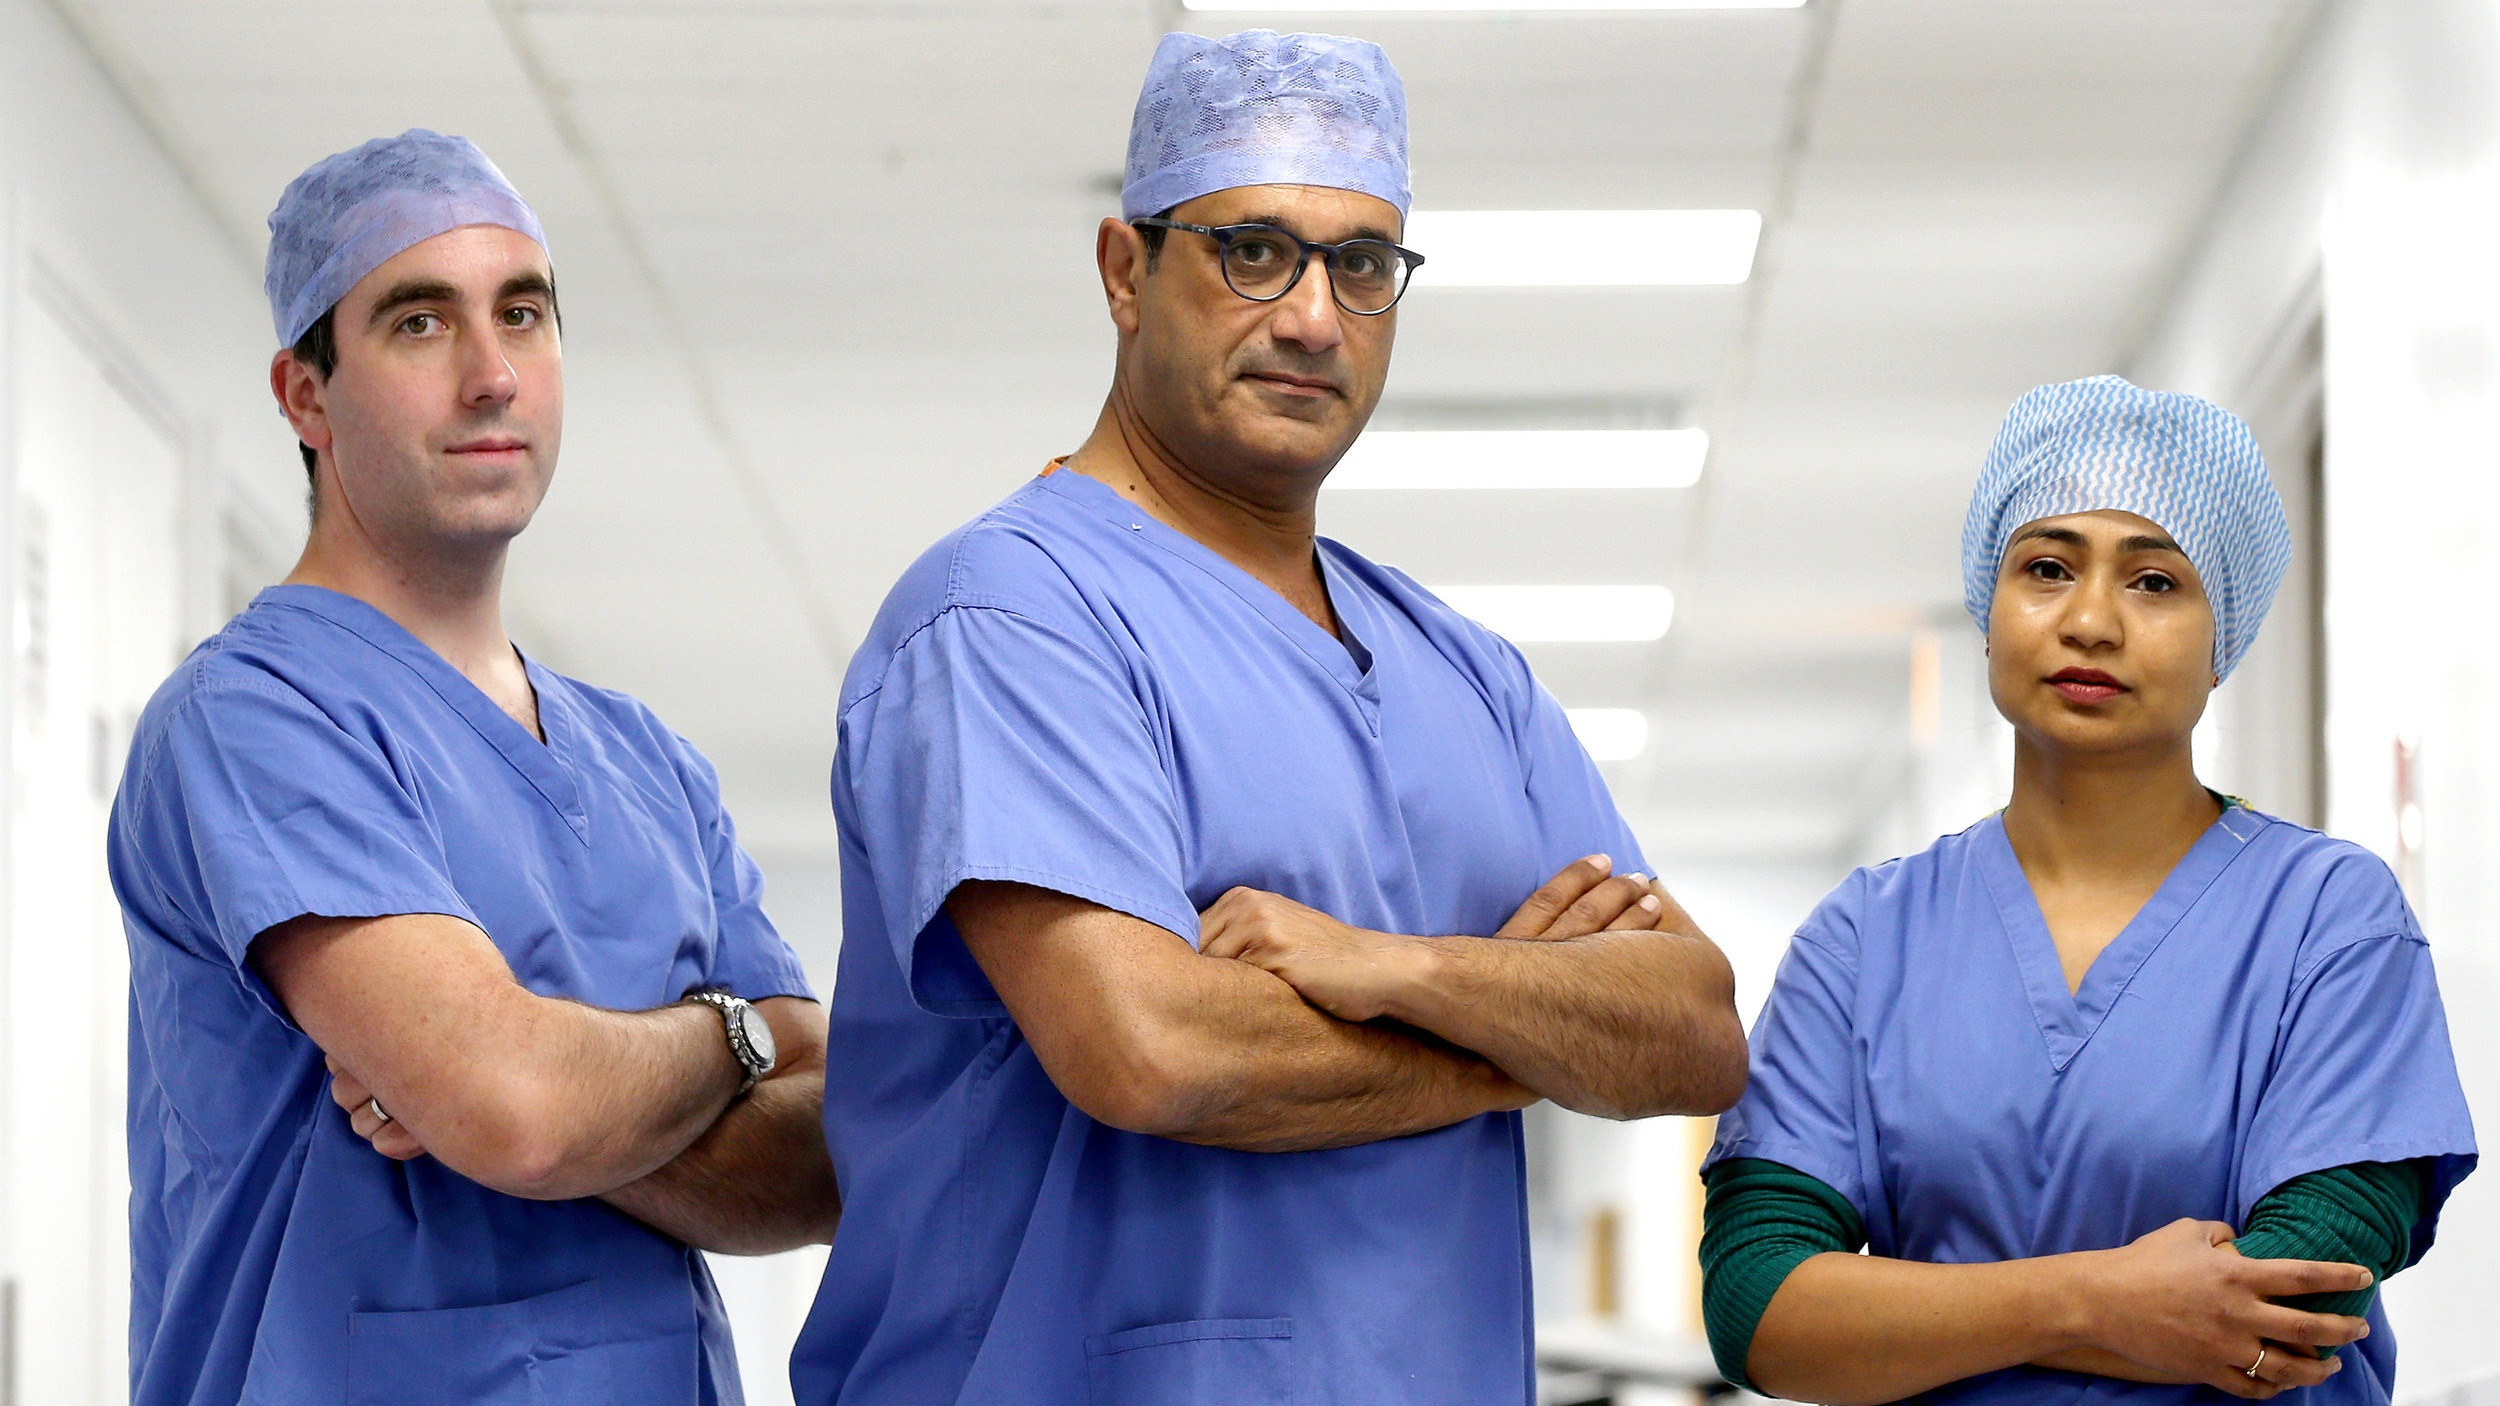 Consultant+Orthopaedic+spinal+surgeons+-+Kyle+McDonald+%28L%29+and+Nagy+Darwish+and+Consultant+Anaesthetist+Anita+Nifade+Eps1.jpg